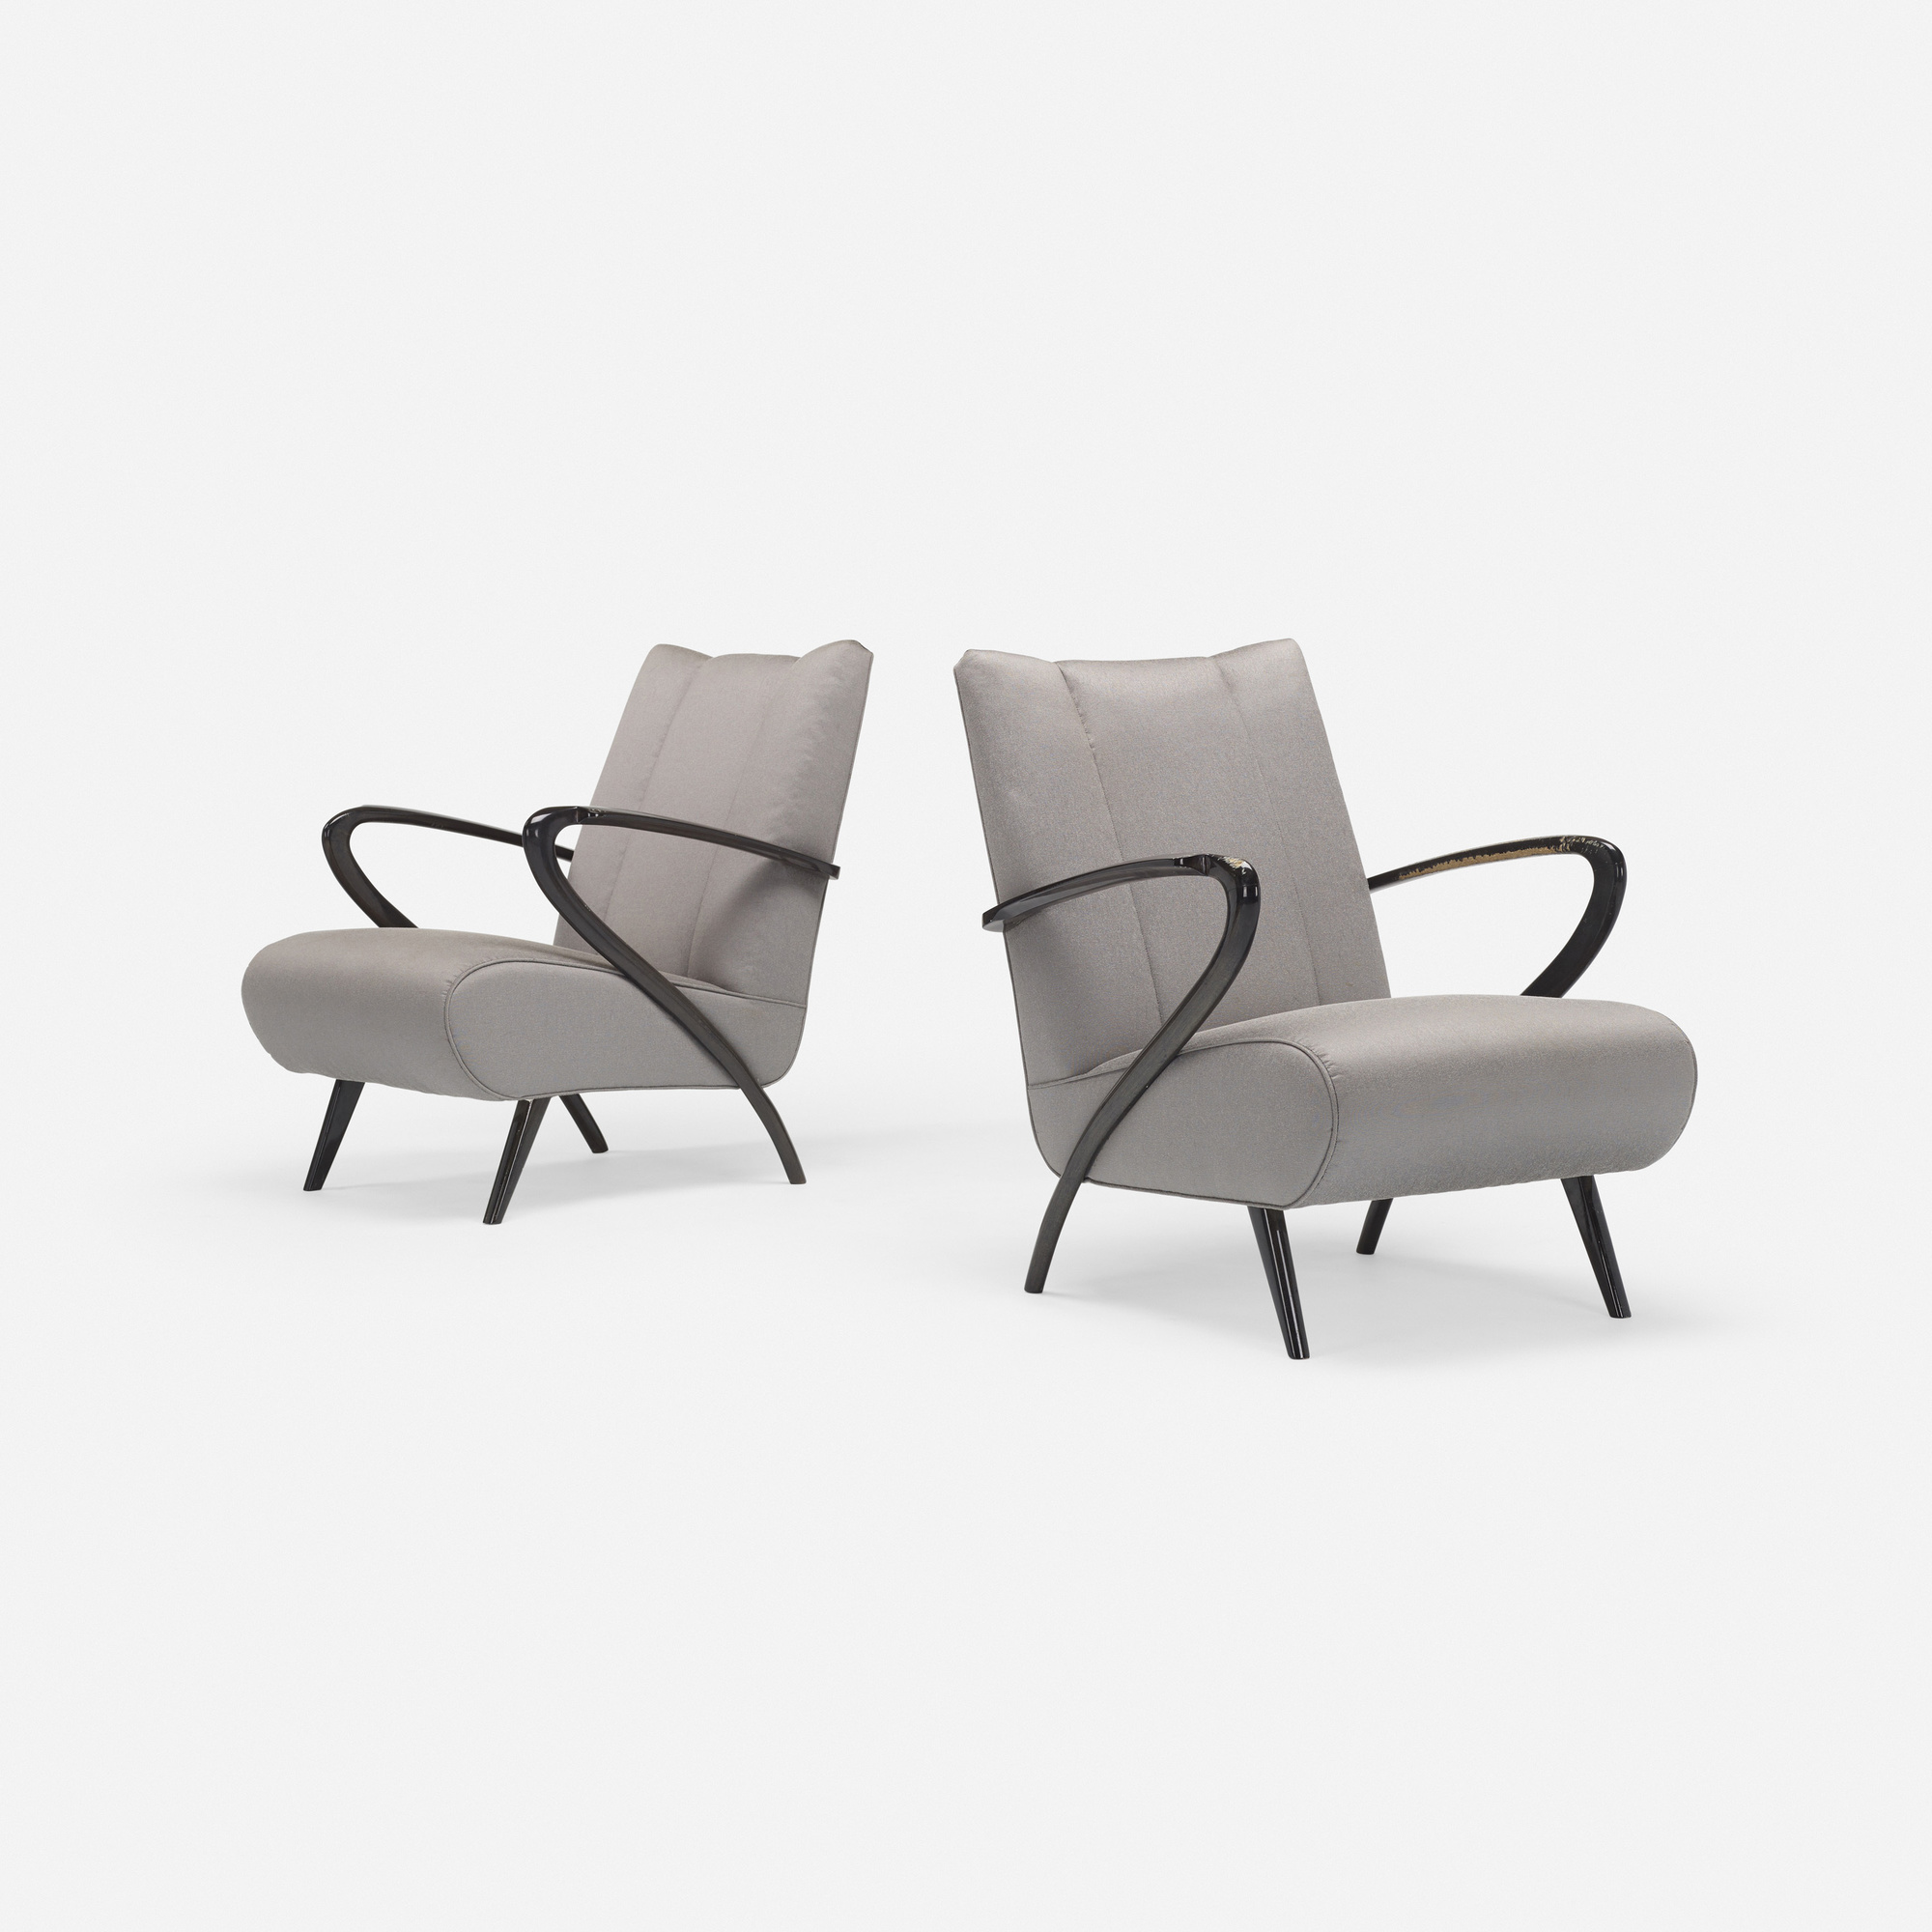 584: Modern / lounge chairs, pair (1 of 4)